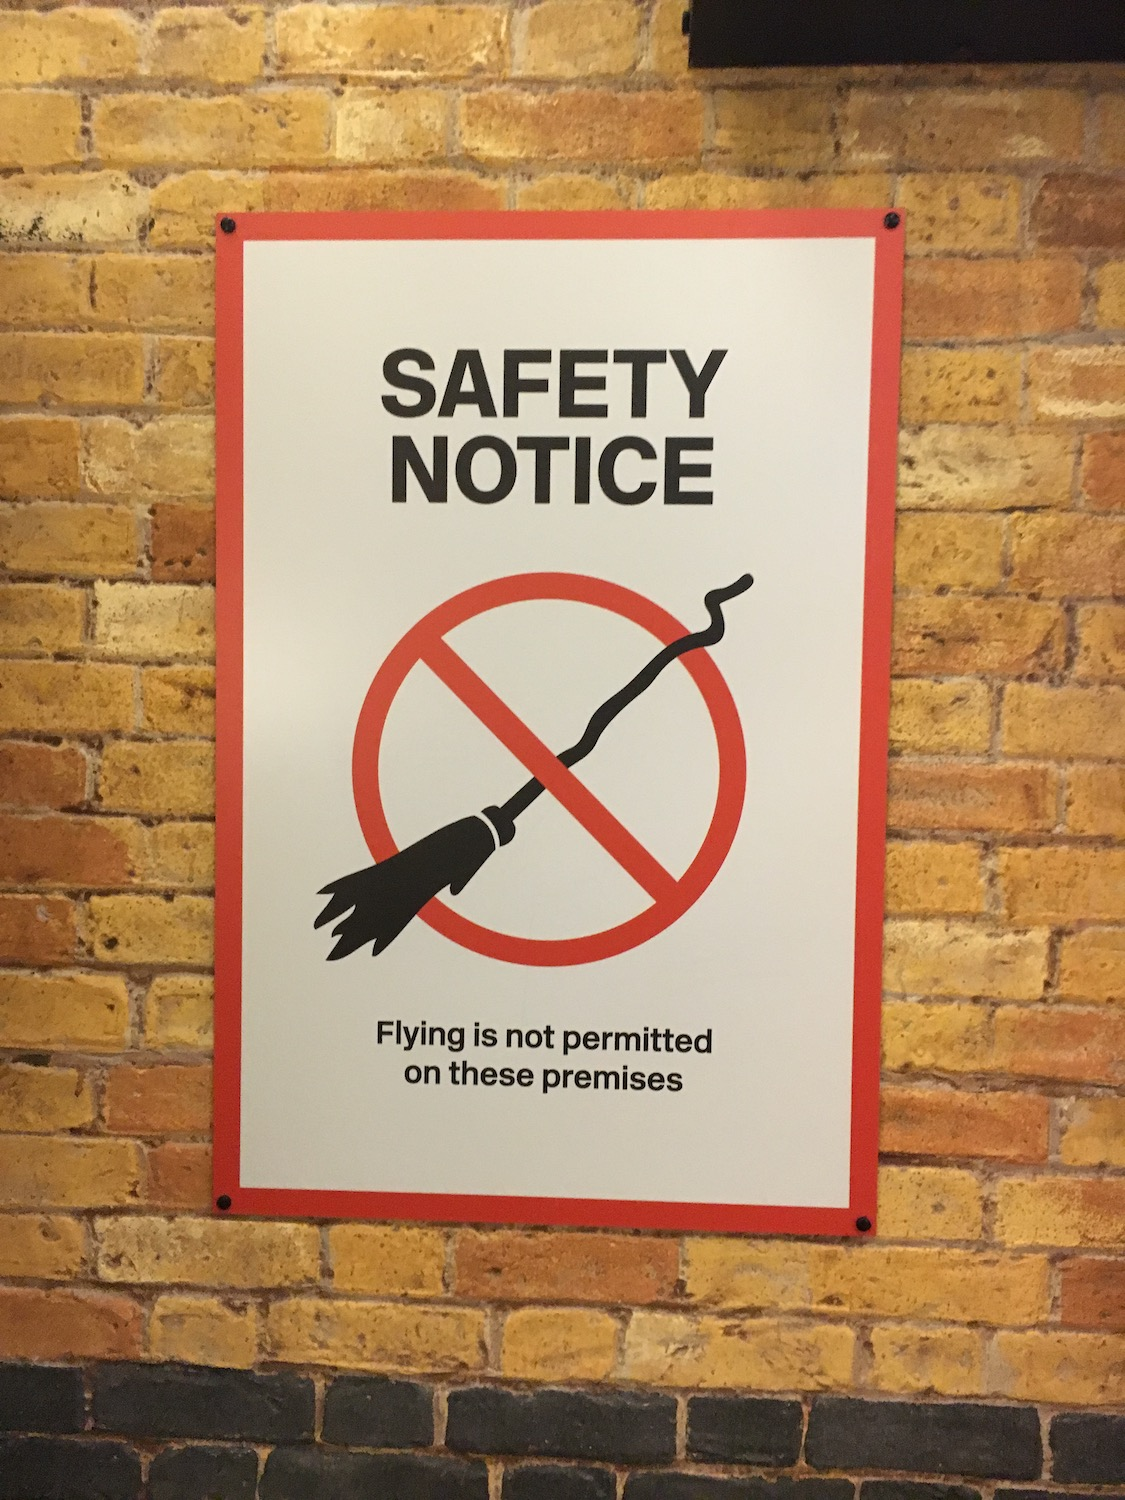 King's Cross safety notice